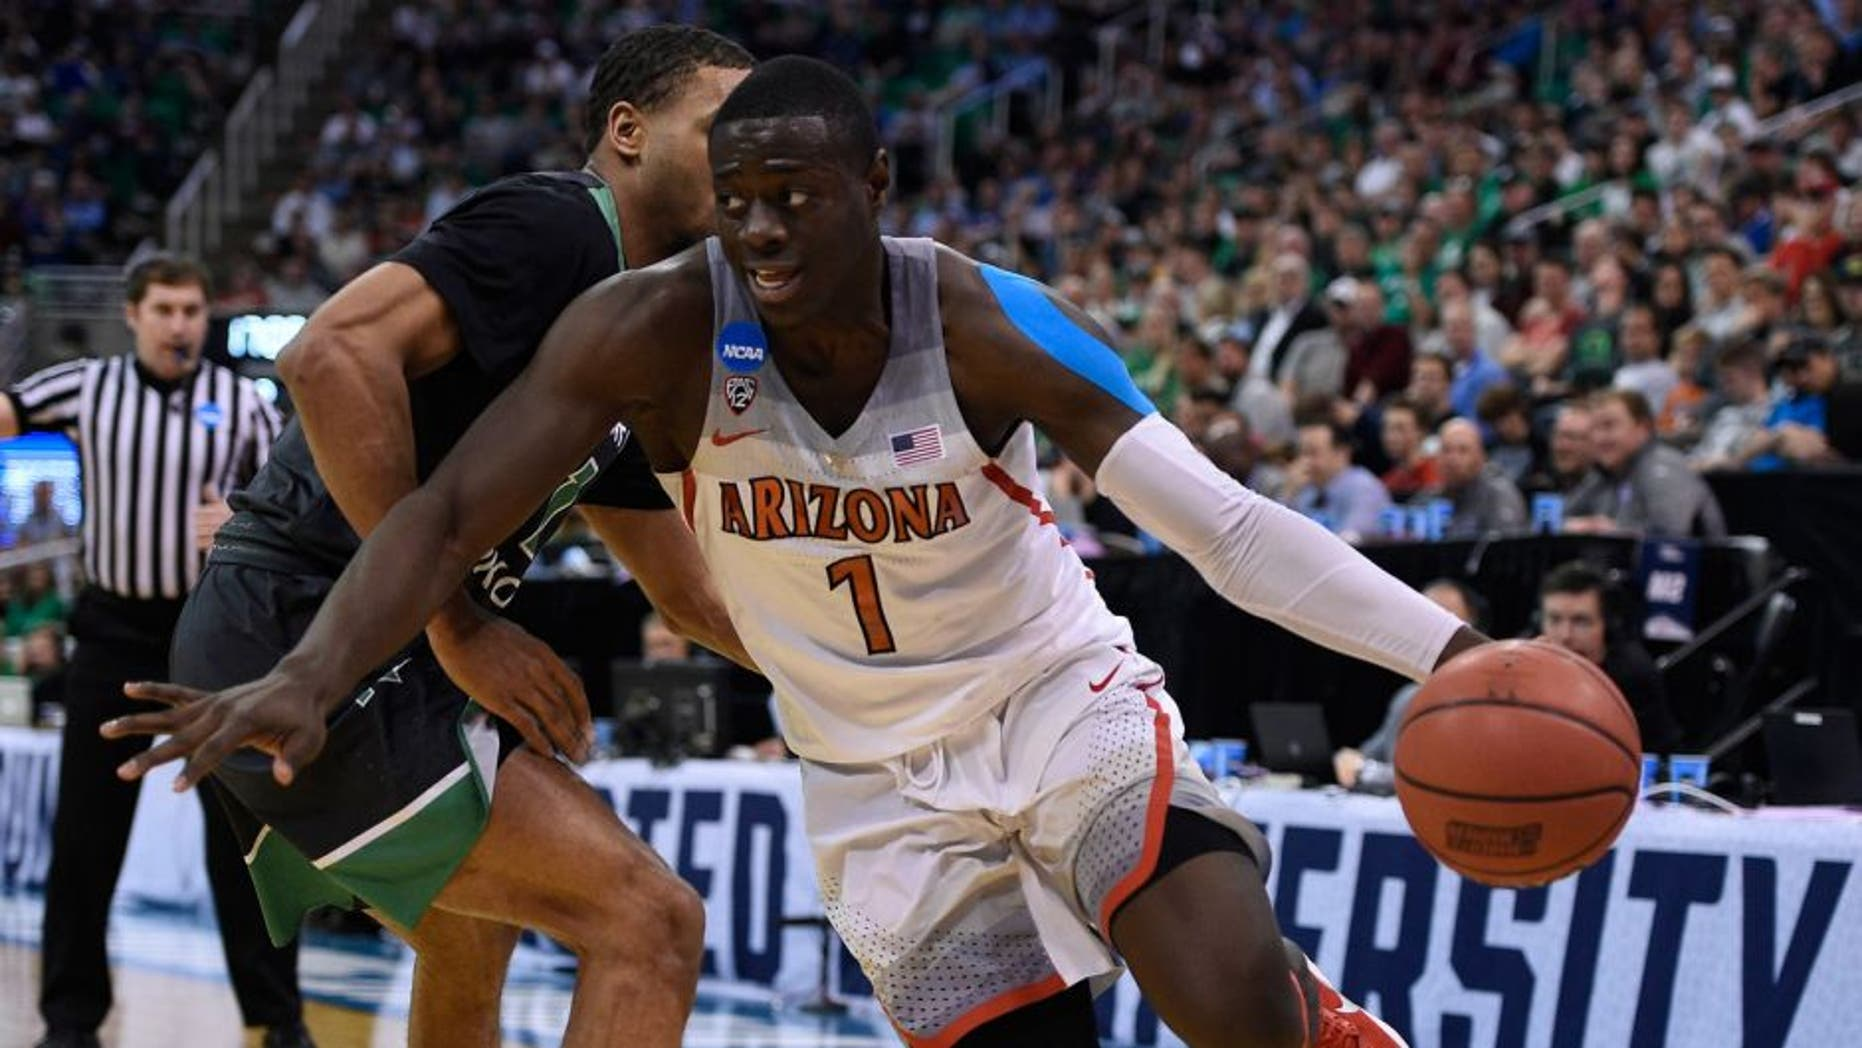 March 16, 2017; Salt Lake City, UT, USA; Arizona Wildcats guard Rawle Alkins (1) moves to the basket against the North Dakota Fighting Hawks during the second half in the first round of the NCAA tournament at Vivint Smart Home Arena. Mandatory Credit: Kelvin Kuo-USA TODAY Sports